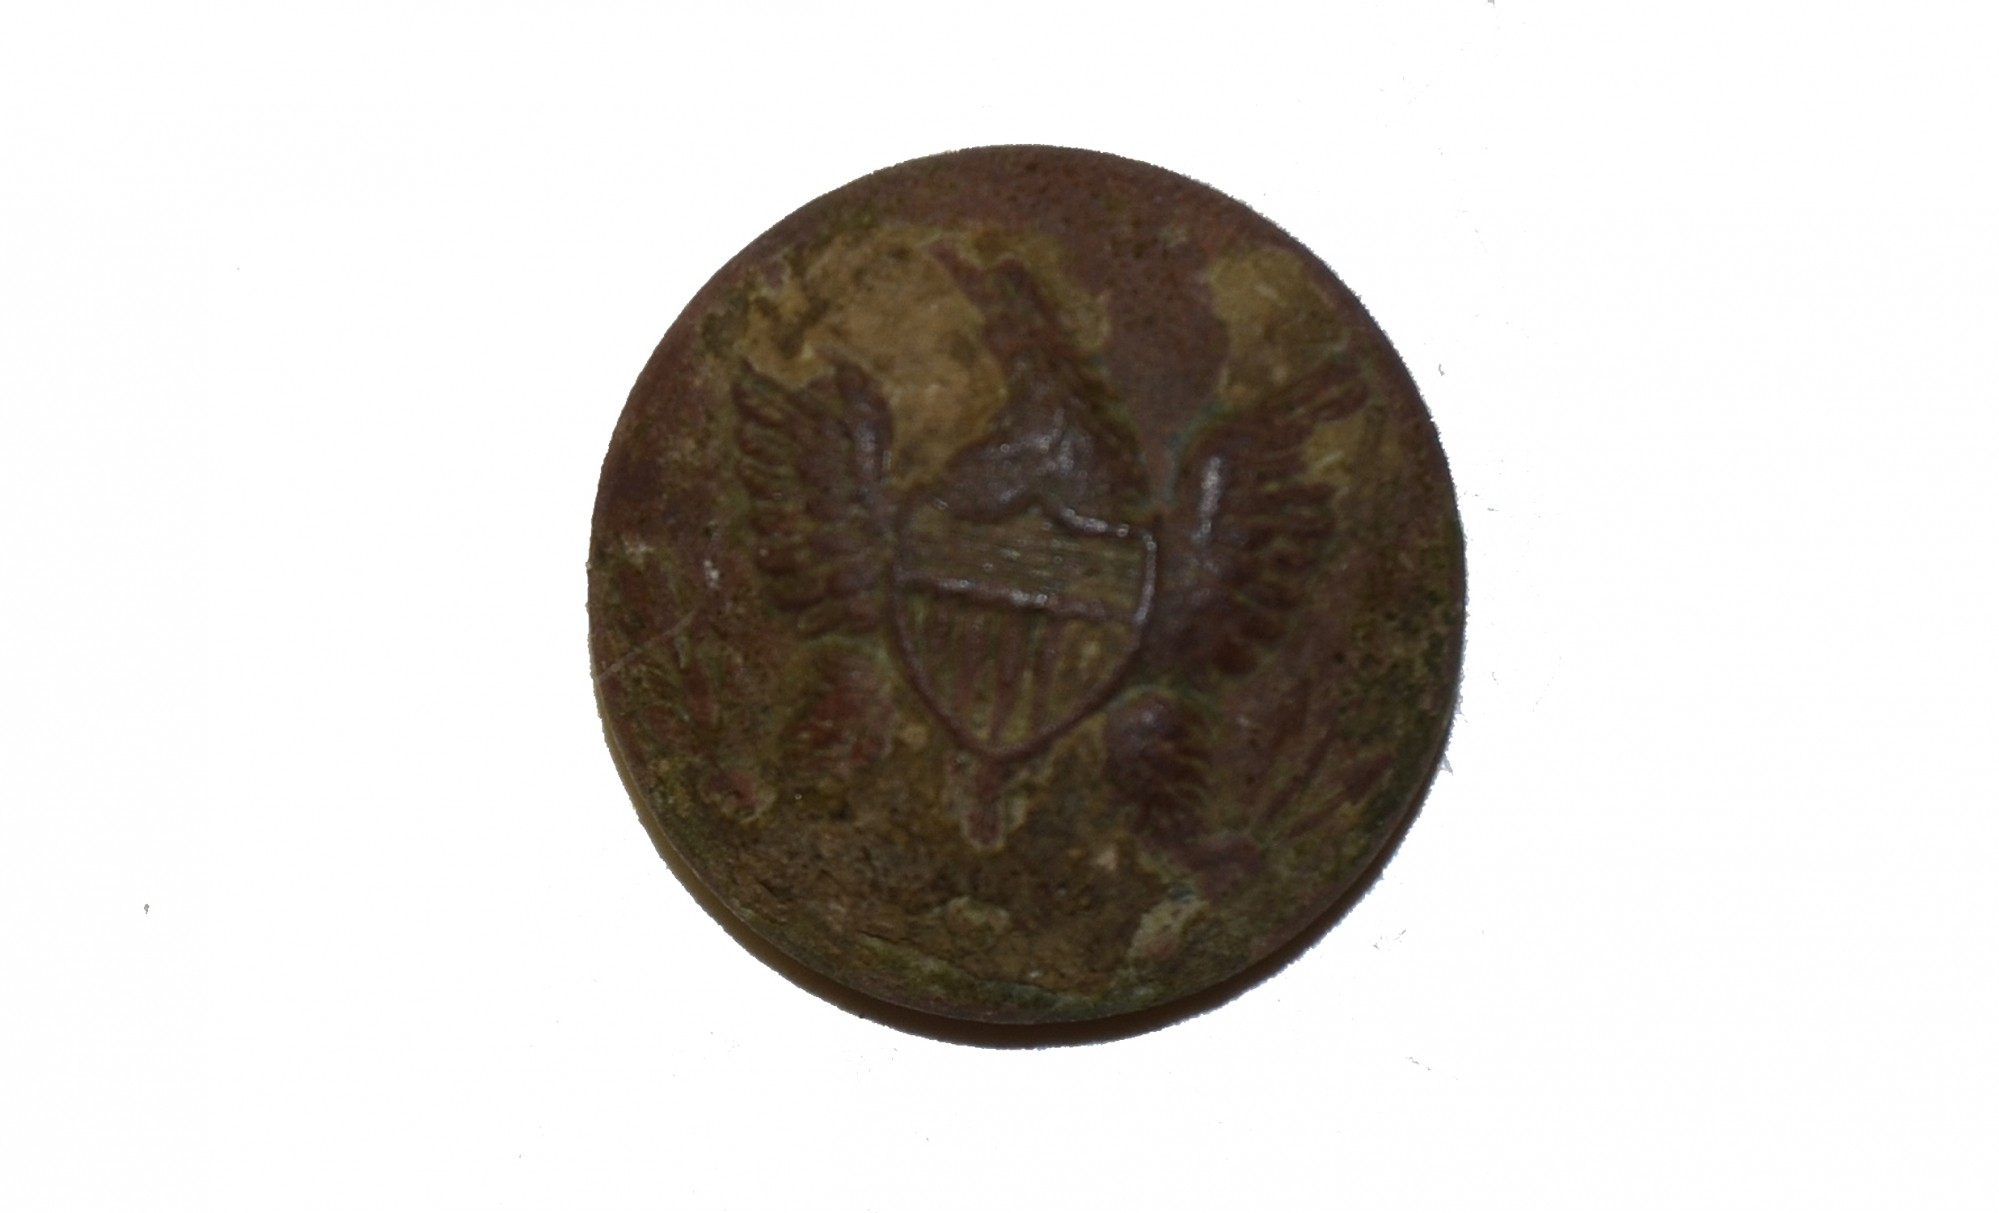 US GENERAL SERVICE EAGLE COAT BUTTON RECOVERED AT GETTYSBURG